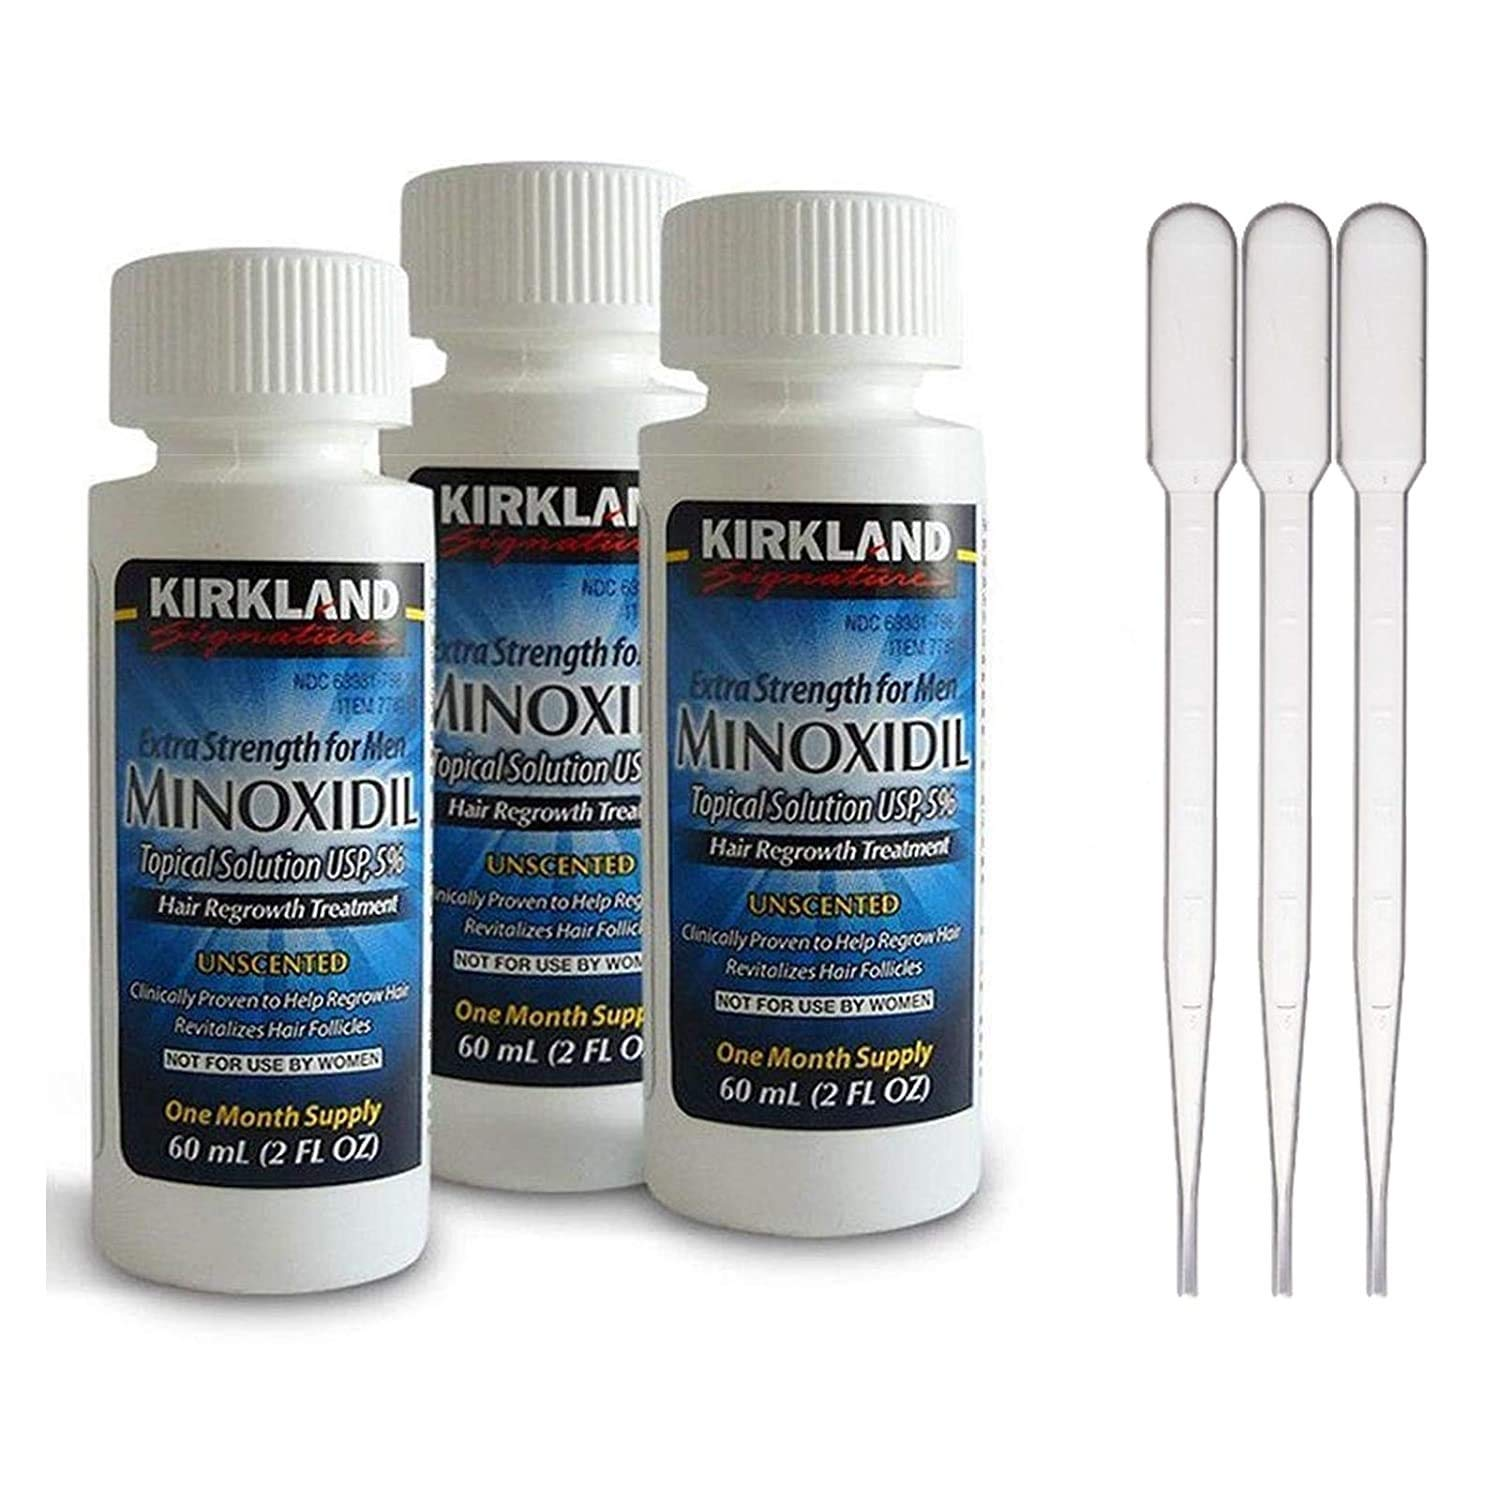 Minoxidil-5% Extra Strength Hair Regrowth - 3 Count 2 oz Bottle (3 Droppers)